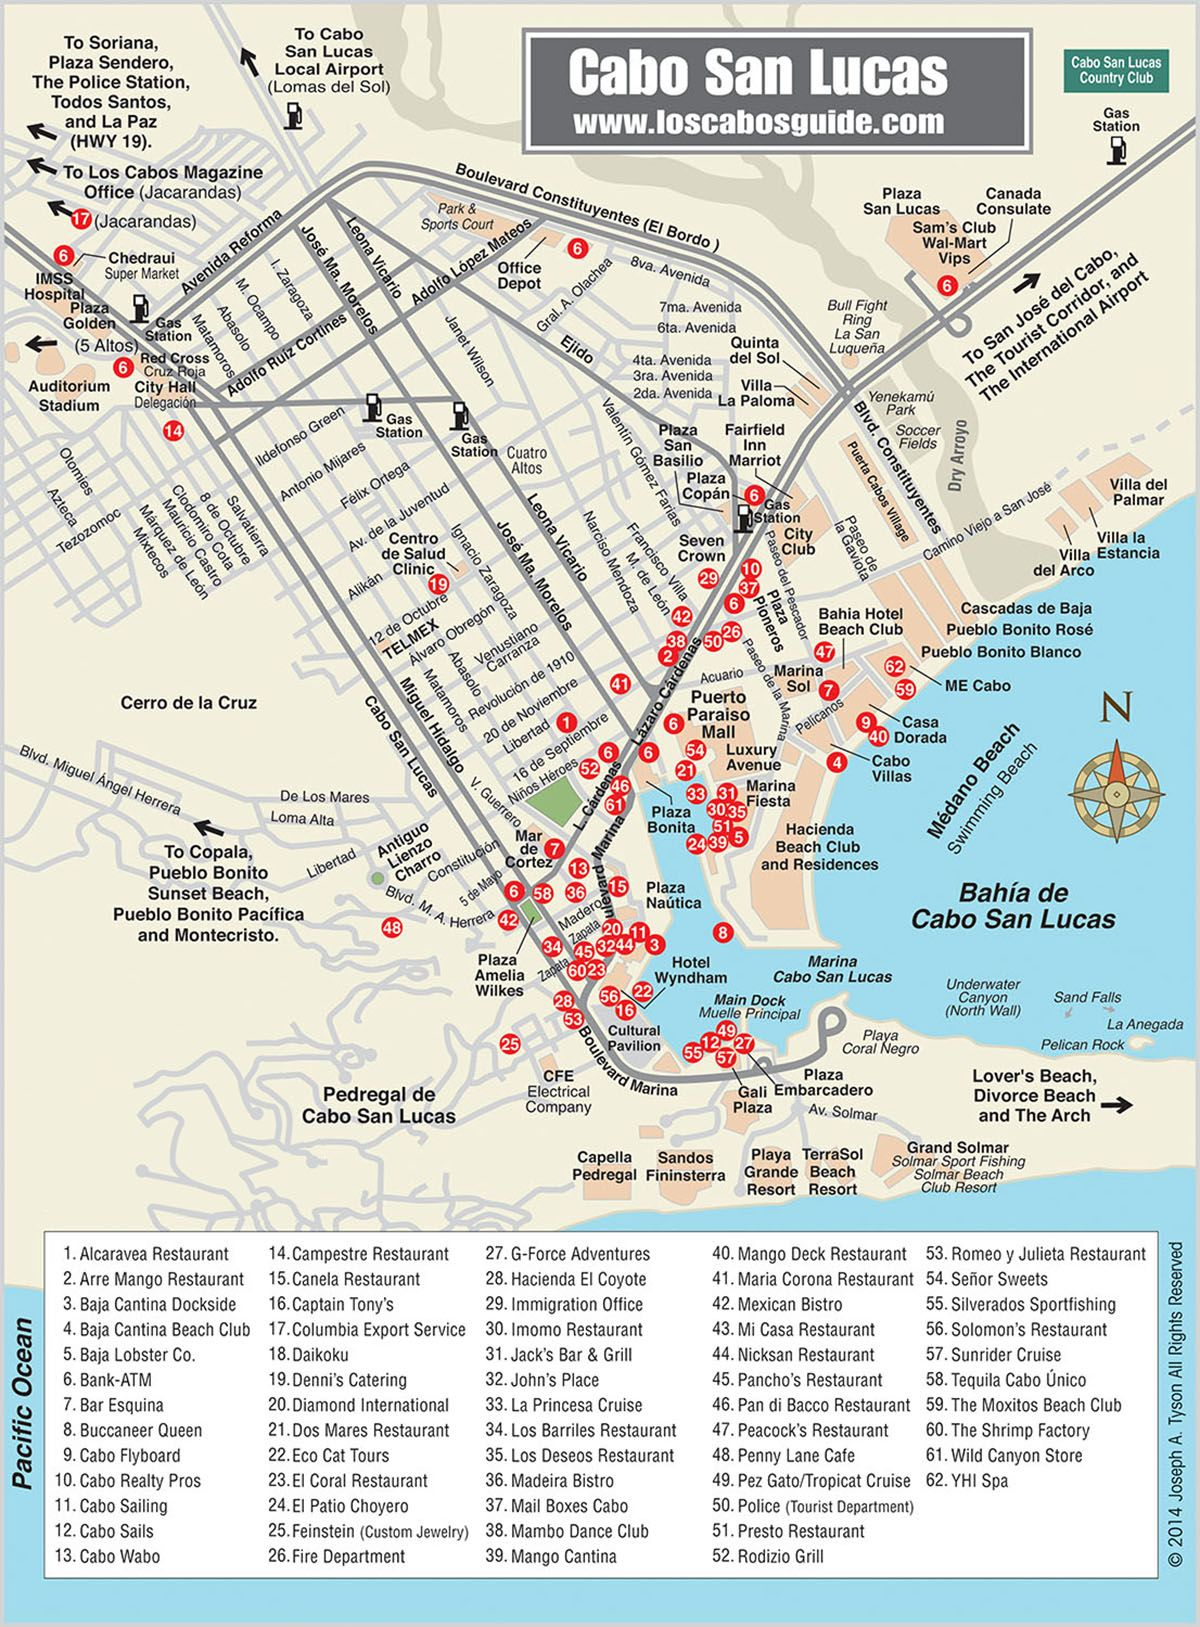 Cabo San Lucas Map Los Cabos Guide Travel